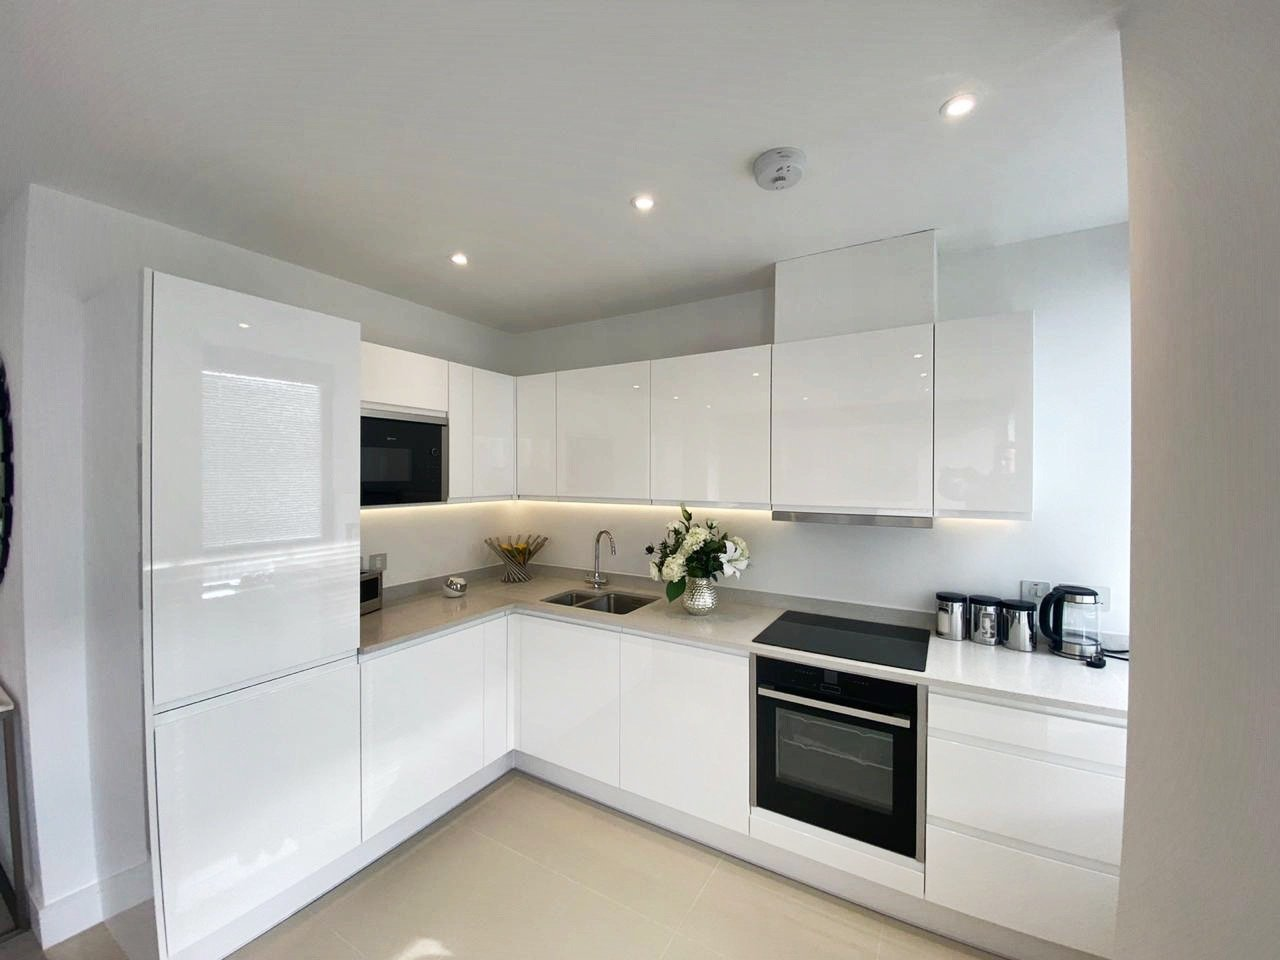 Prestigious Building in St Helier, One Bedroom Luxury Apartment Purchase off plan,  2 Remaining